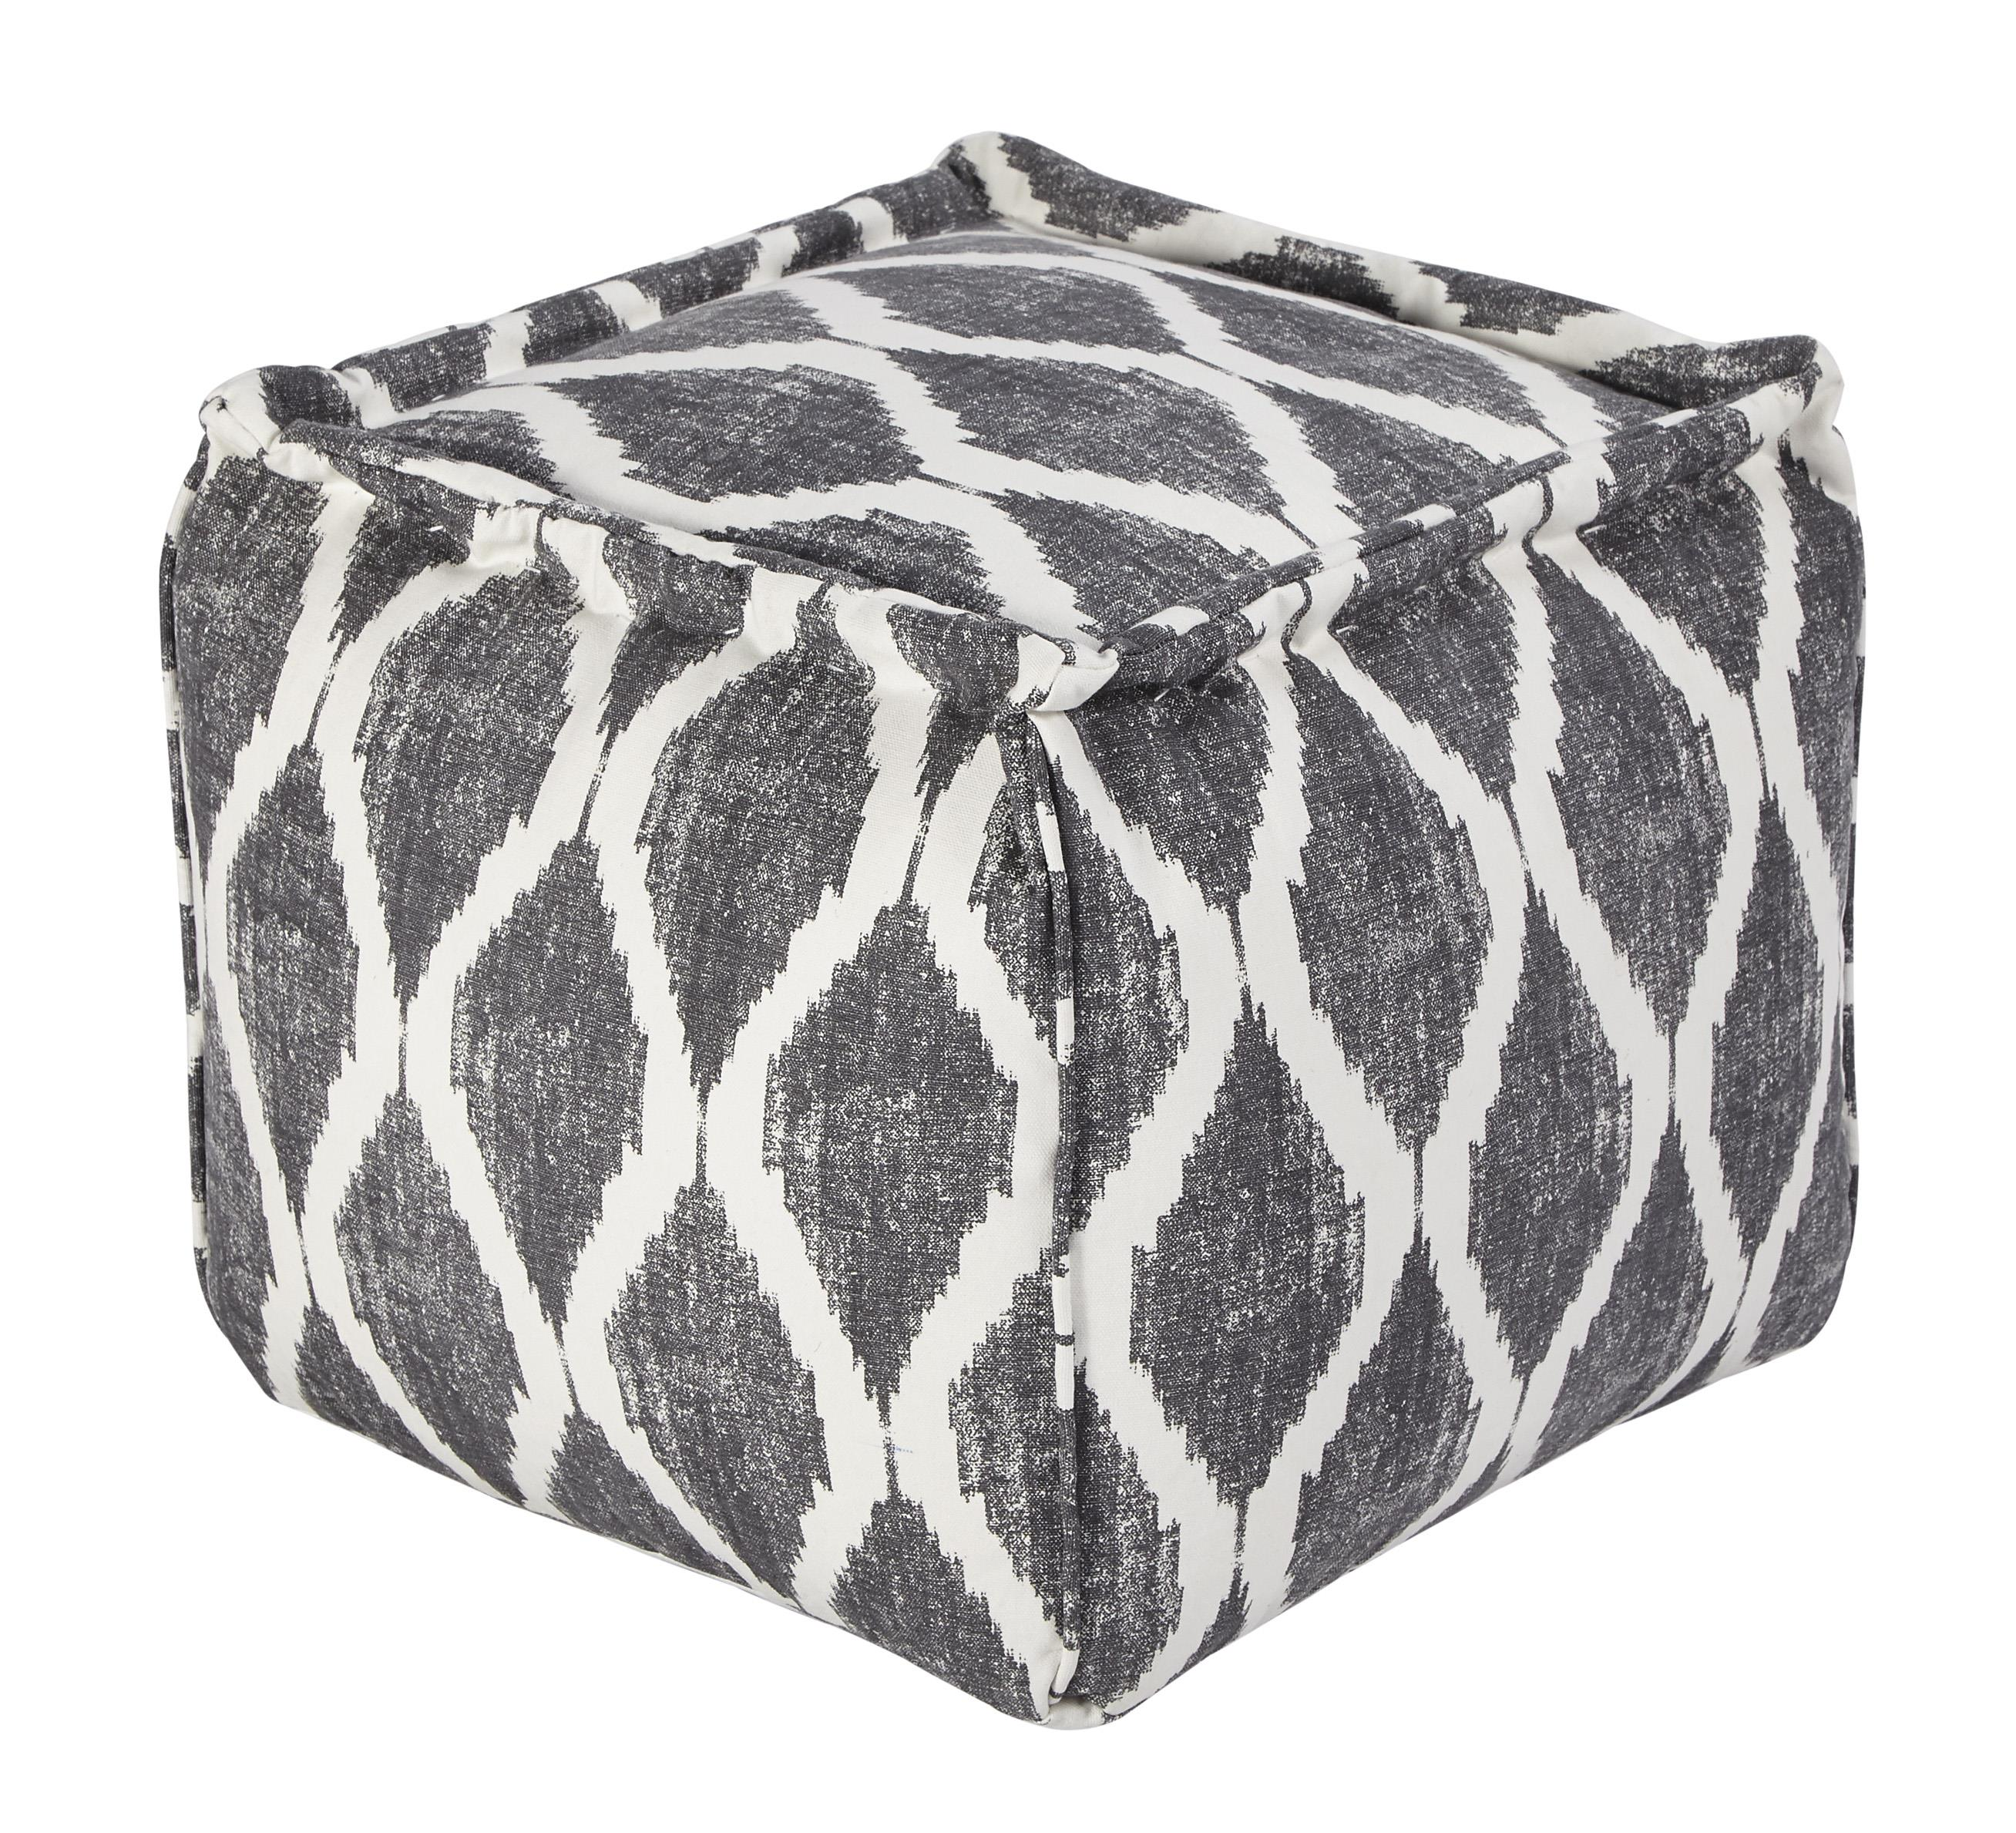 Signature Design by Ashley Poufs Bruce - Gray/White - Item Number: A1000546